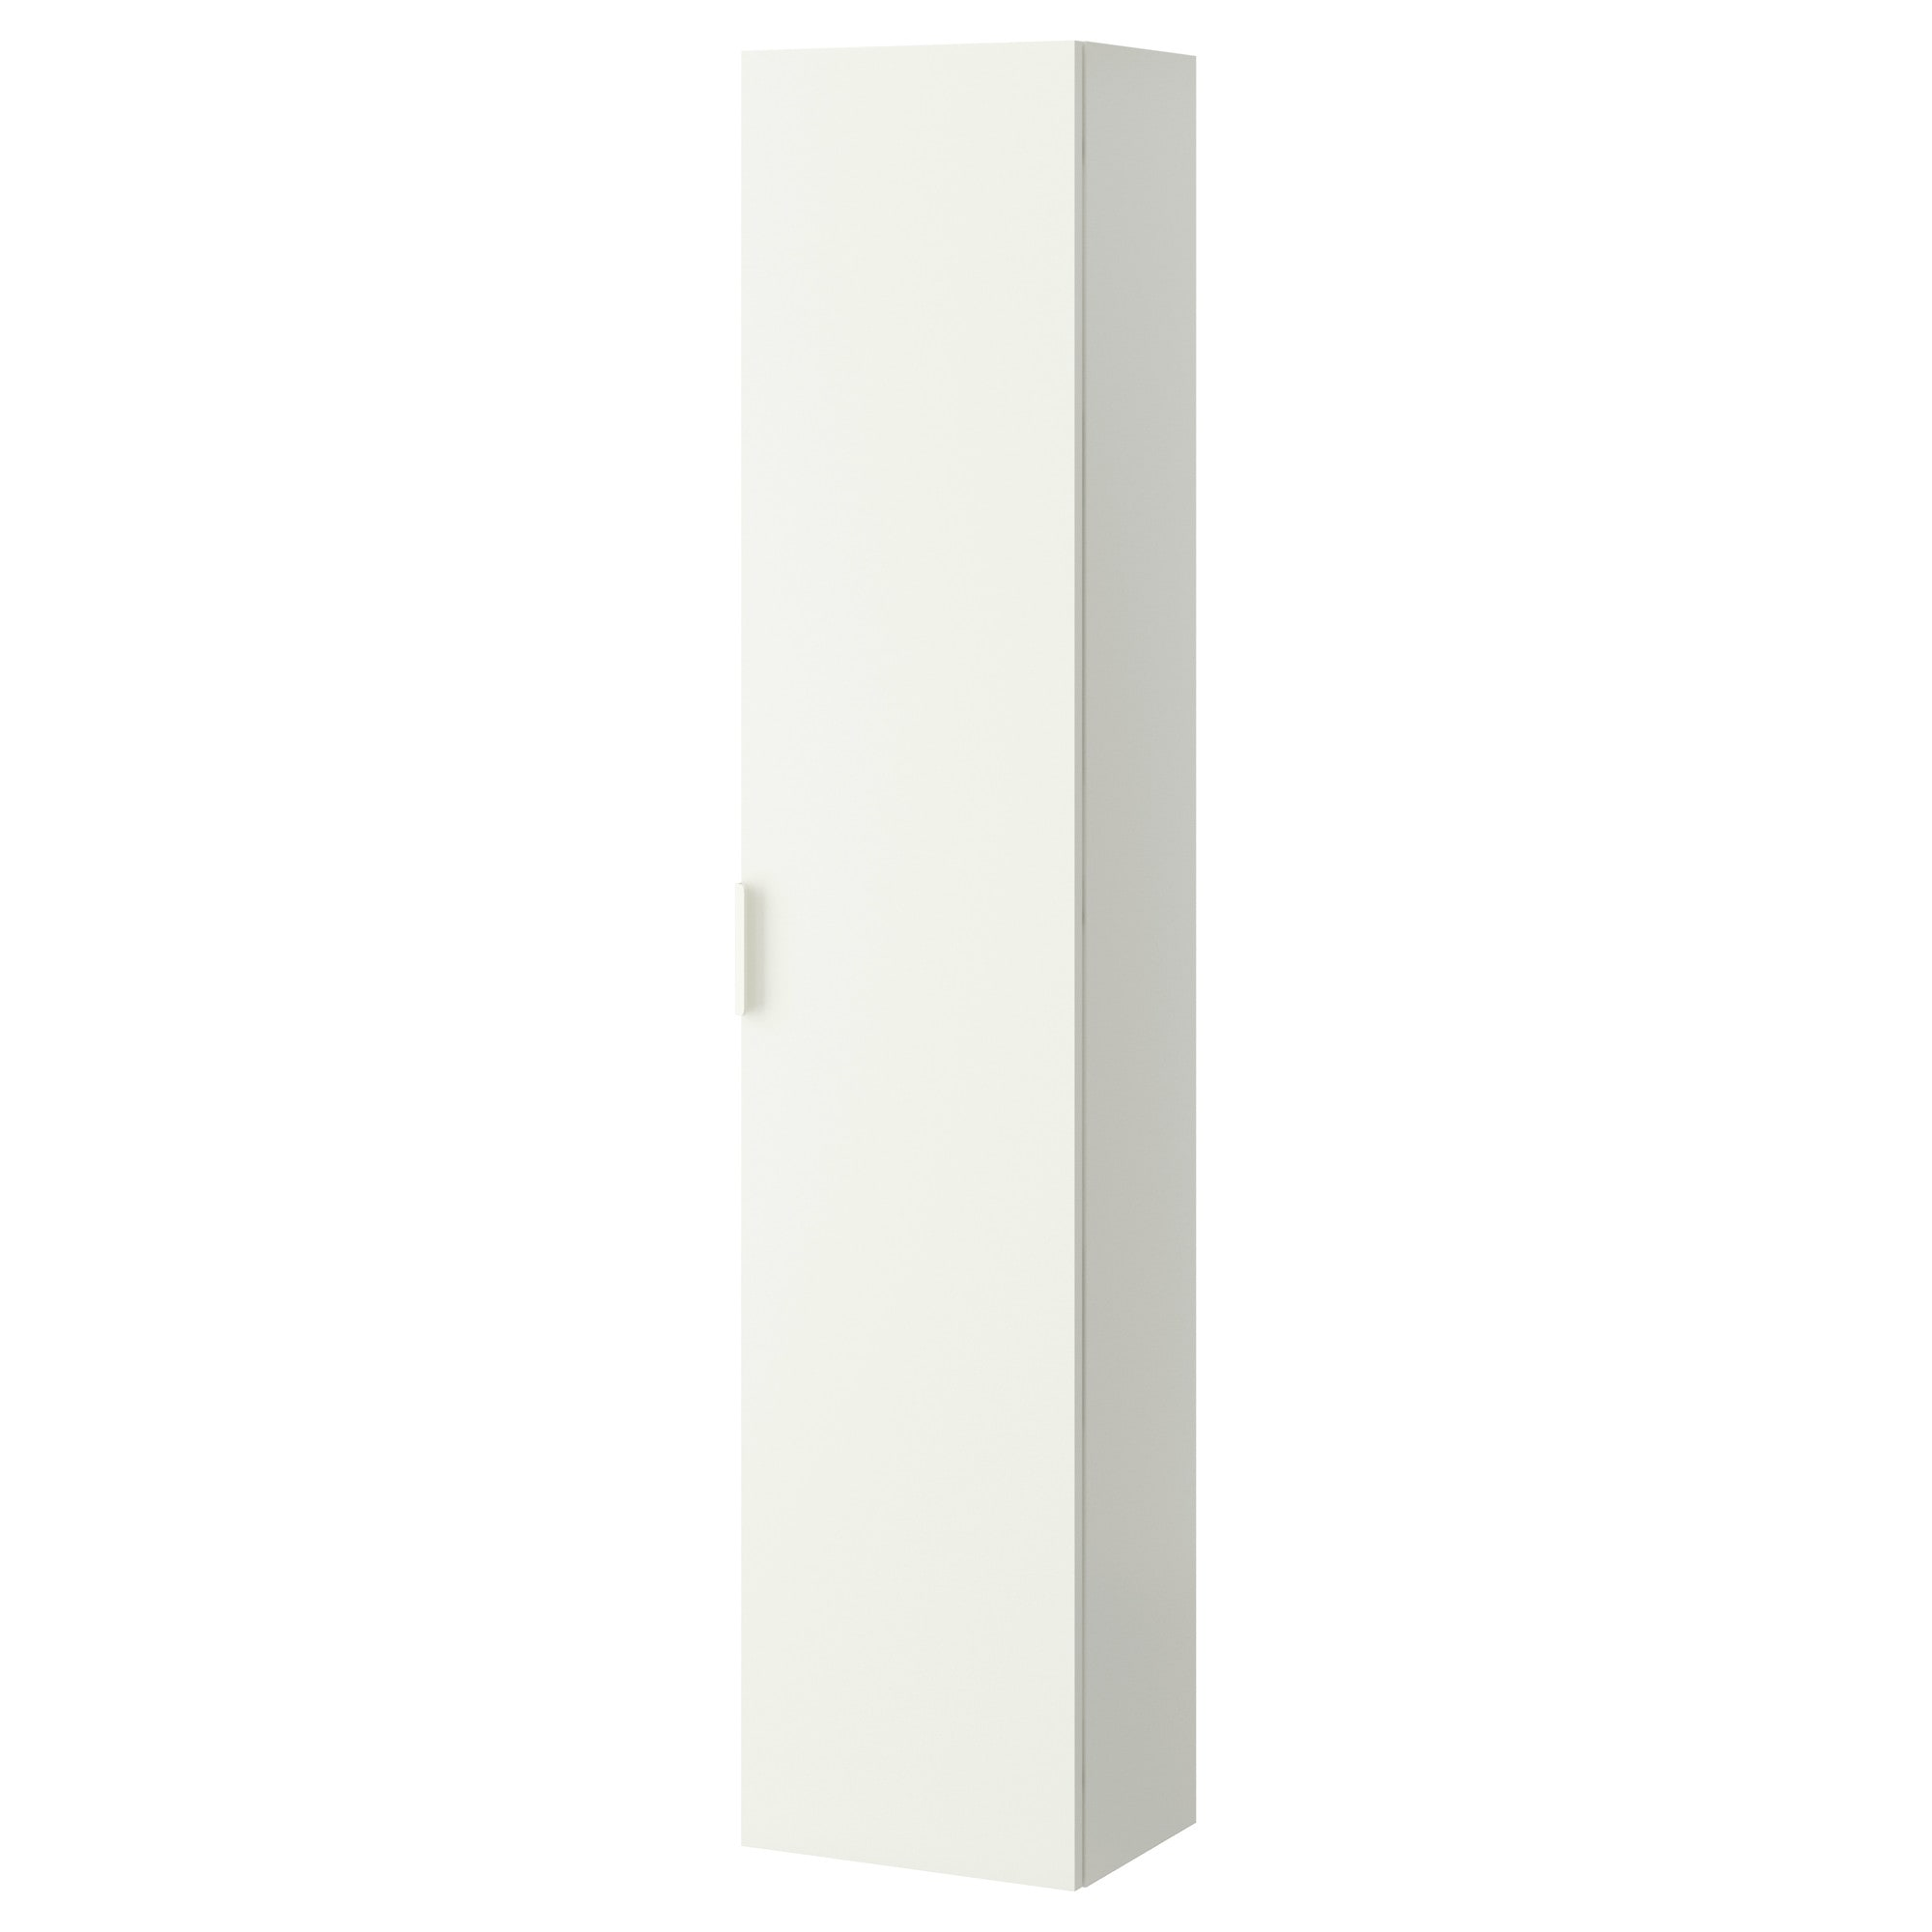 godmorgon high cabinet white width 15 34 depth 12 5 - Bathroom Cabinets Tall